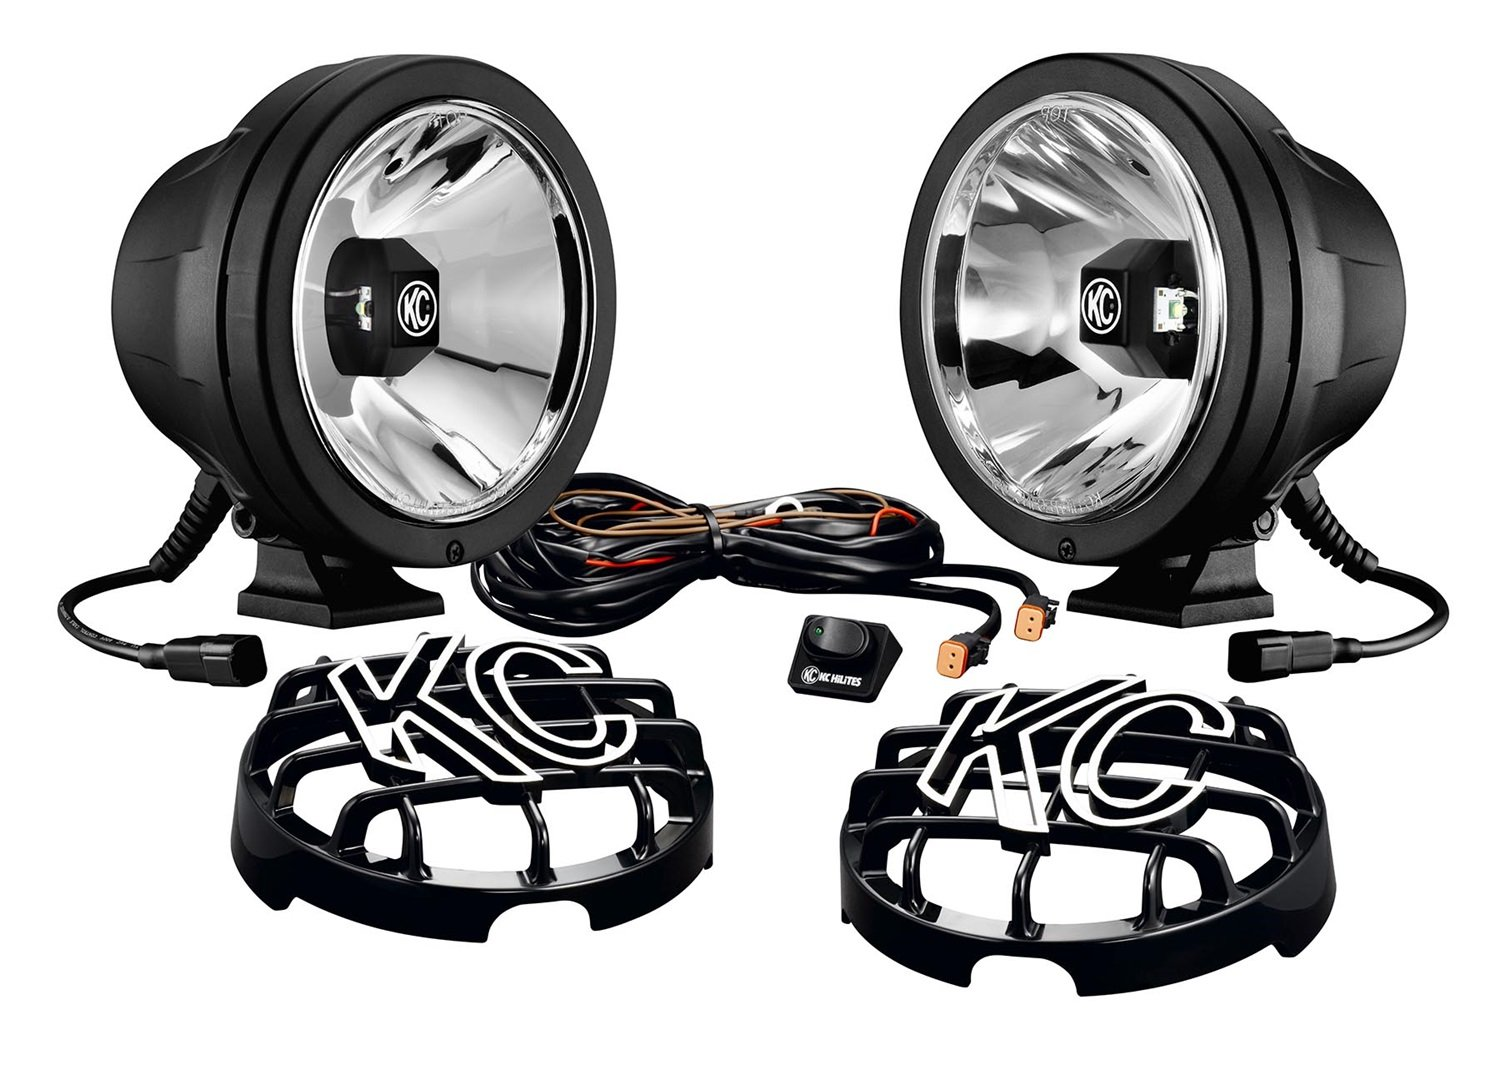 Amazon.com KC HiLiTES 644 6-Inch Pro Sport LED Drive Beam Pack - Pair Automotive  sc 1 st  Amazon.com : key lighting kc - azcodes.com